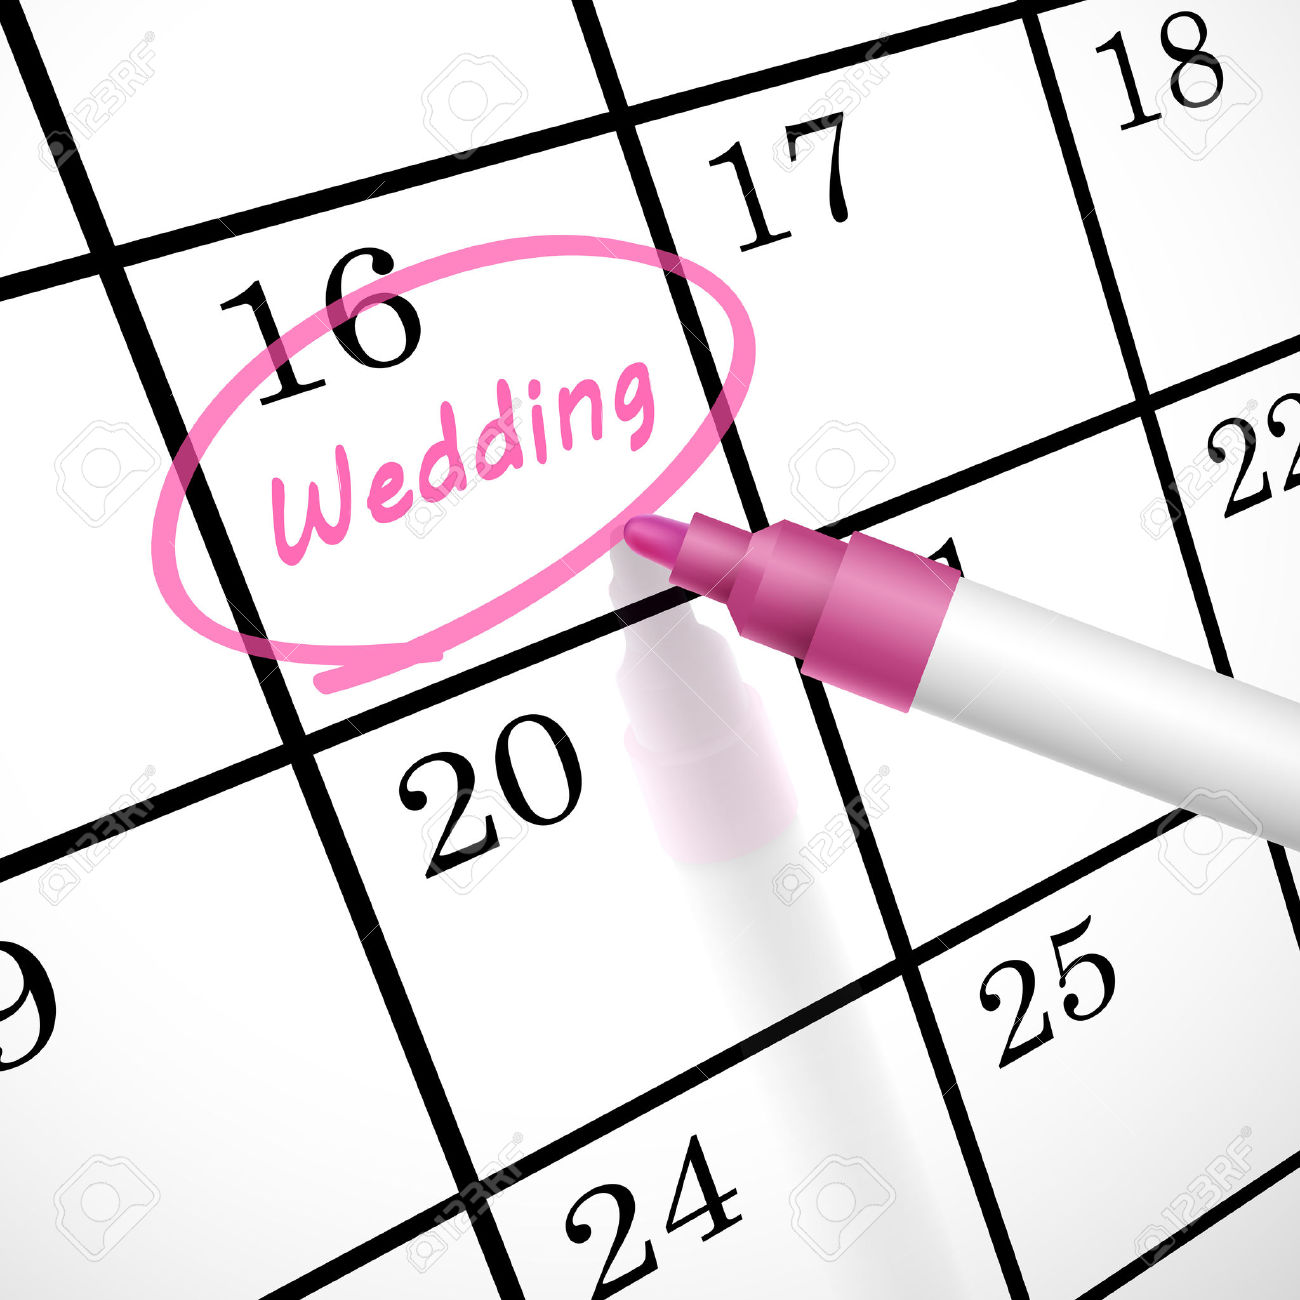 Weddings . Calendar clipart wedding